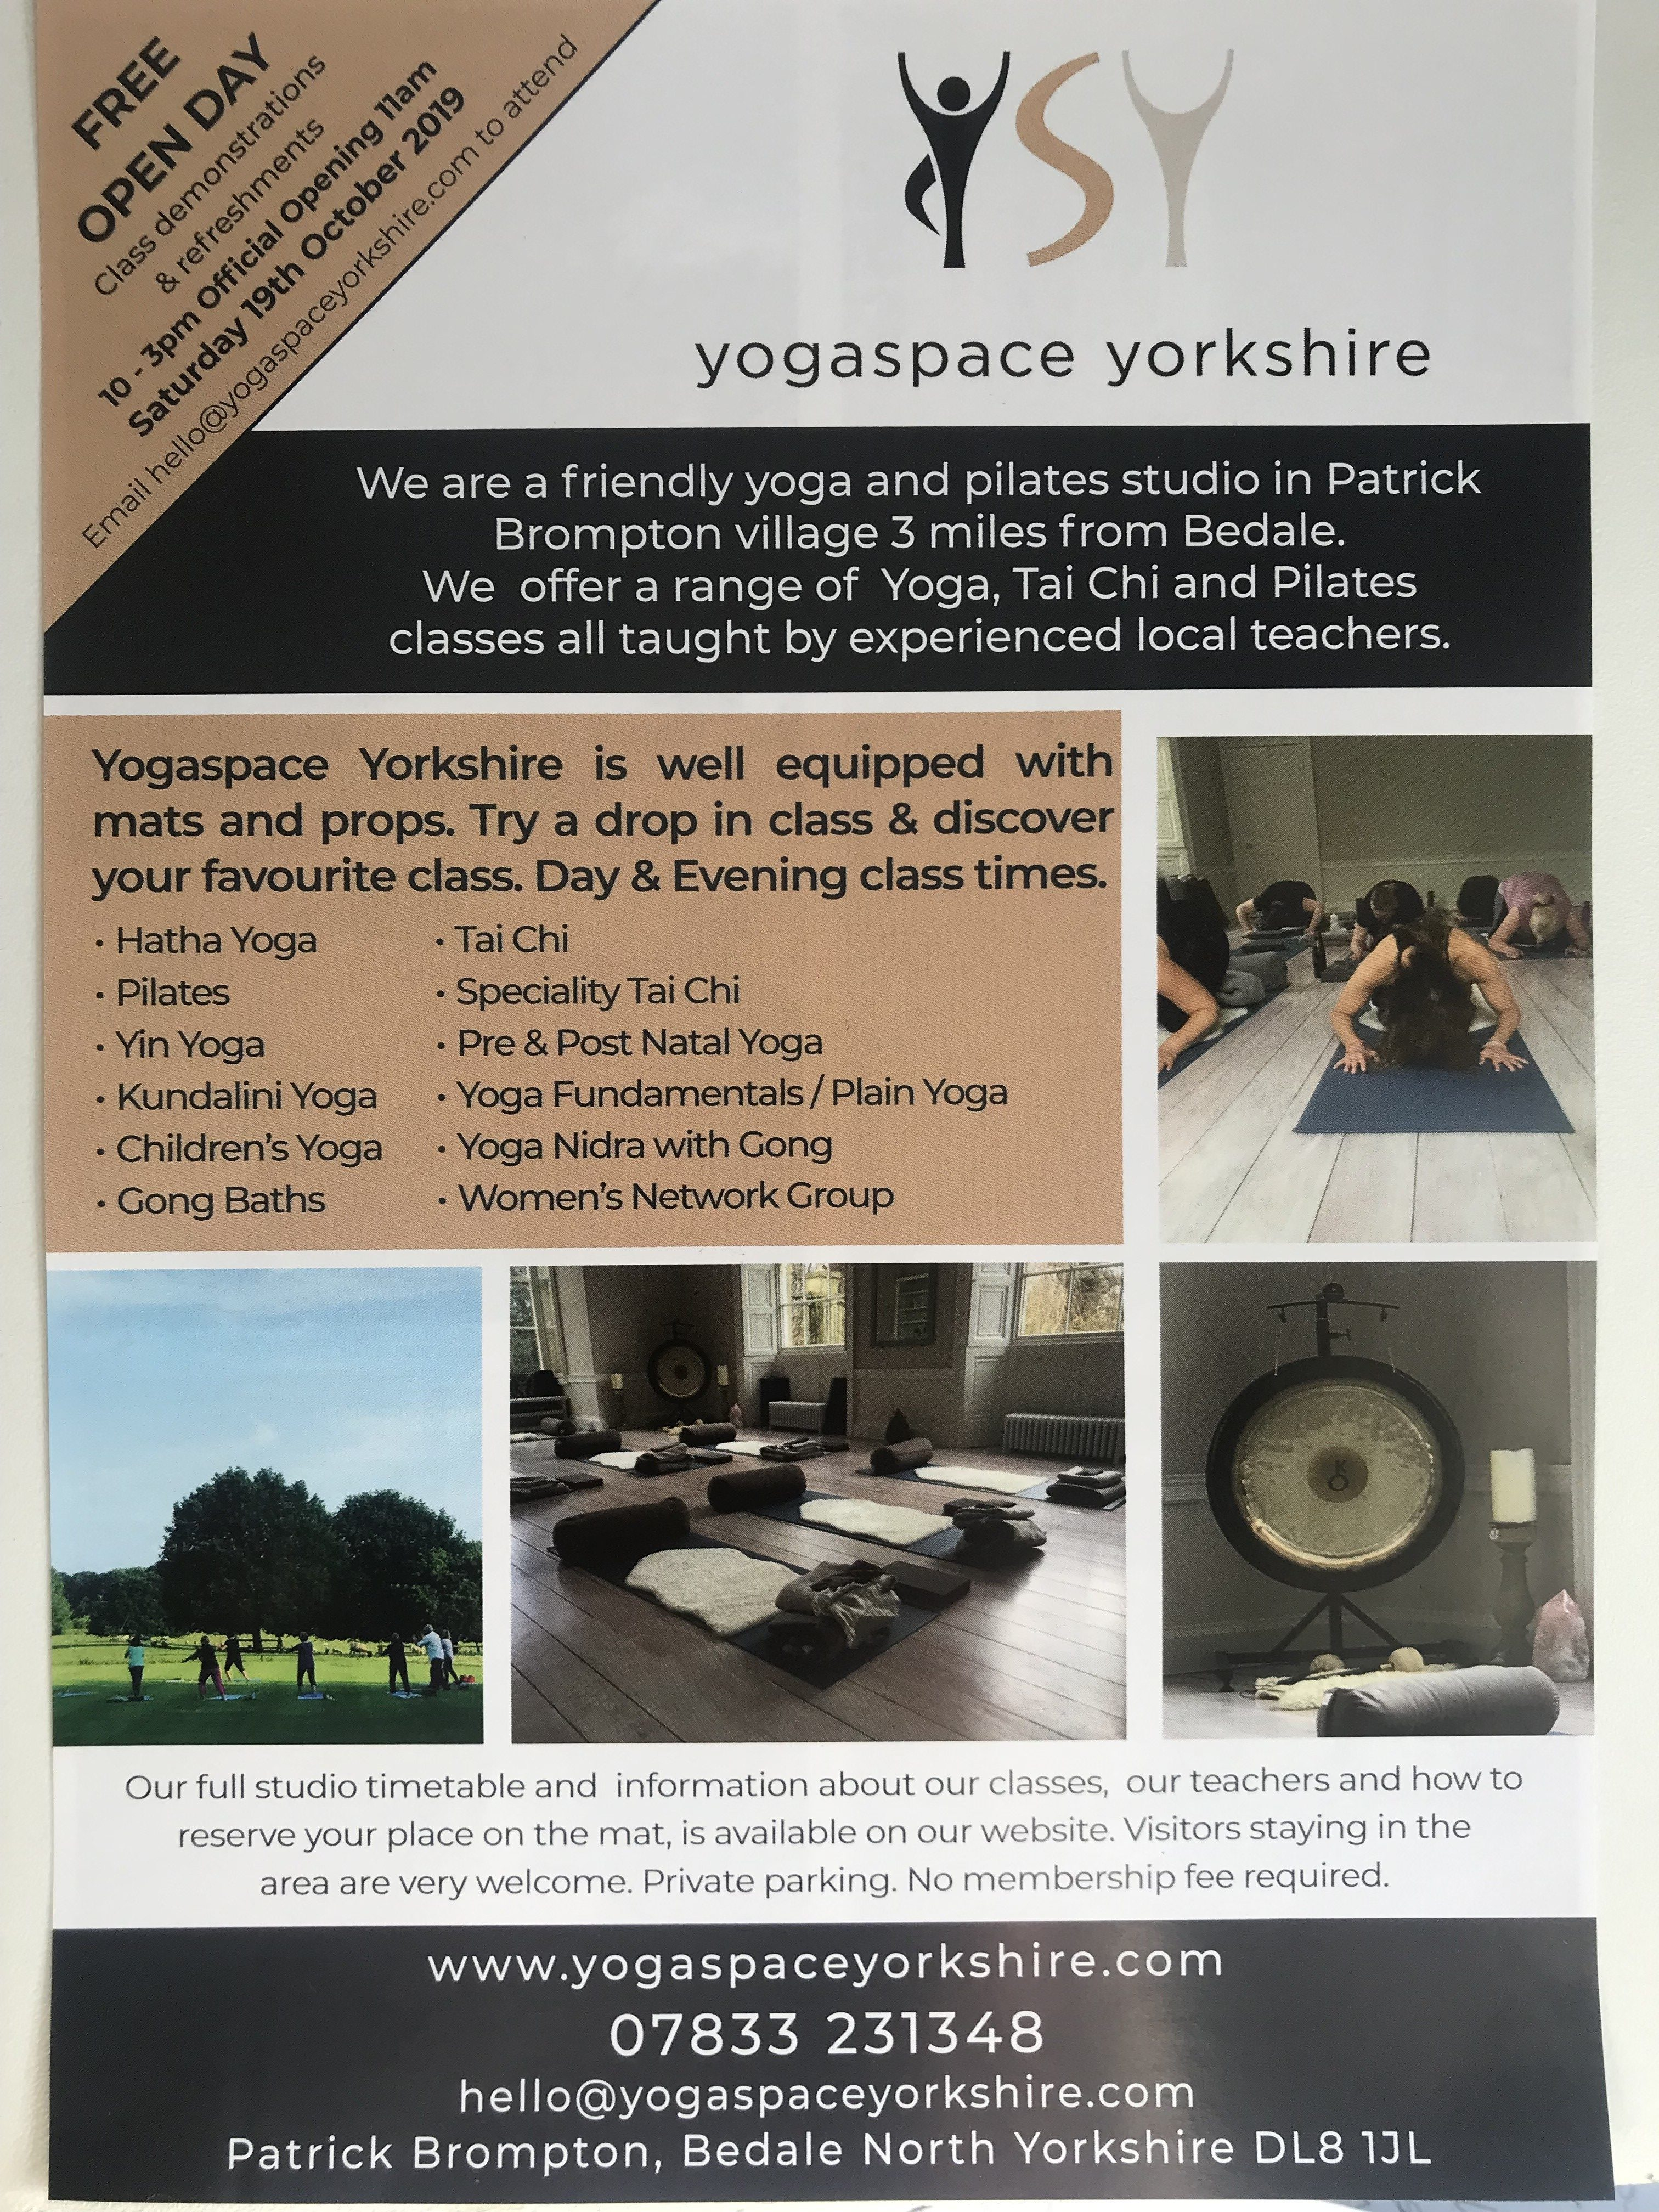 YogaSpace Yorkshire open morning 19th October 2019